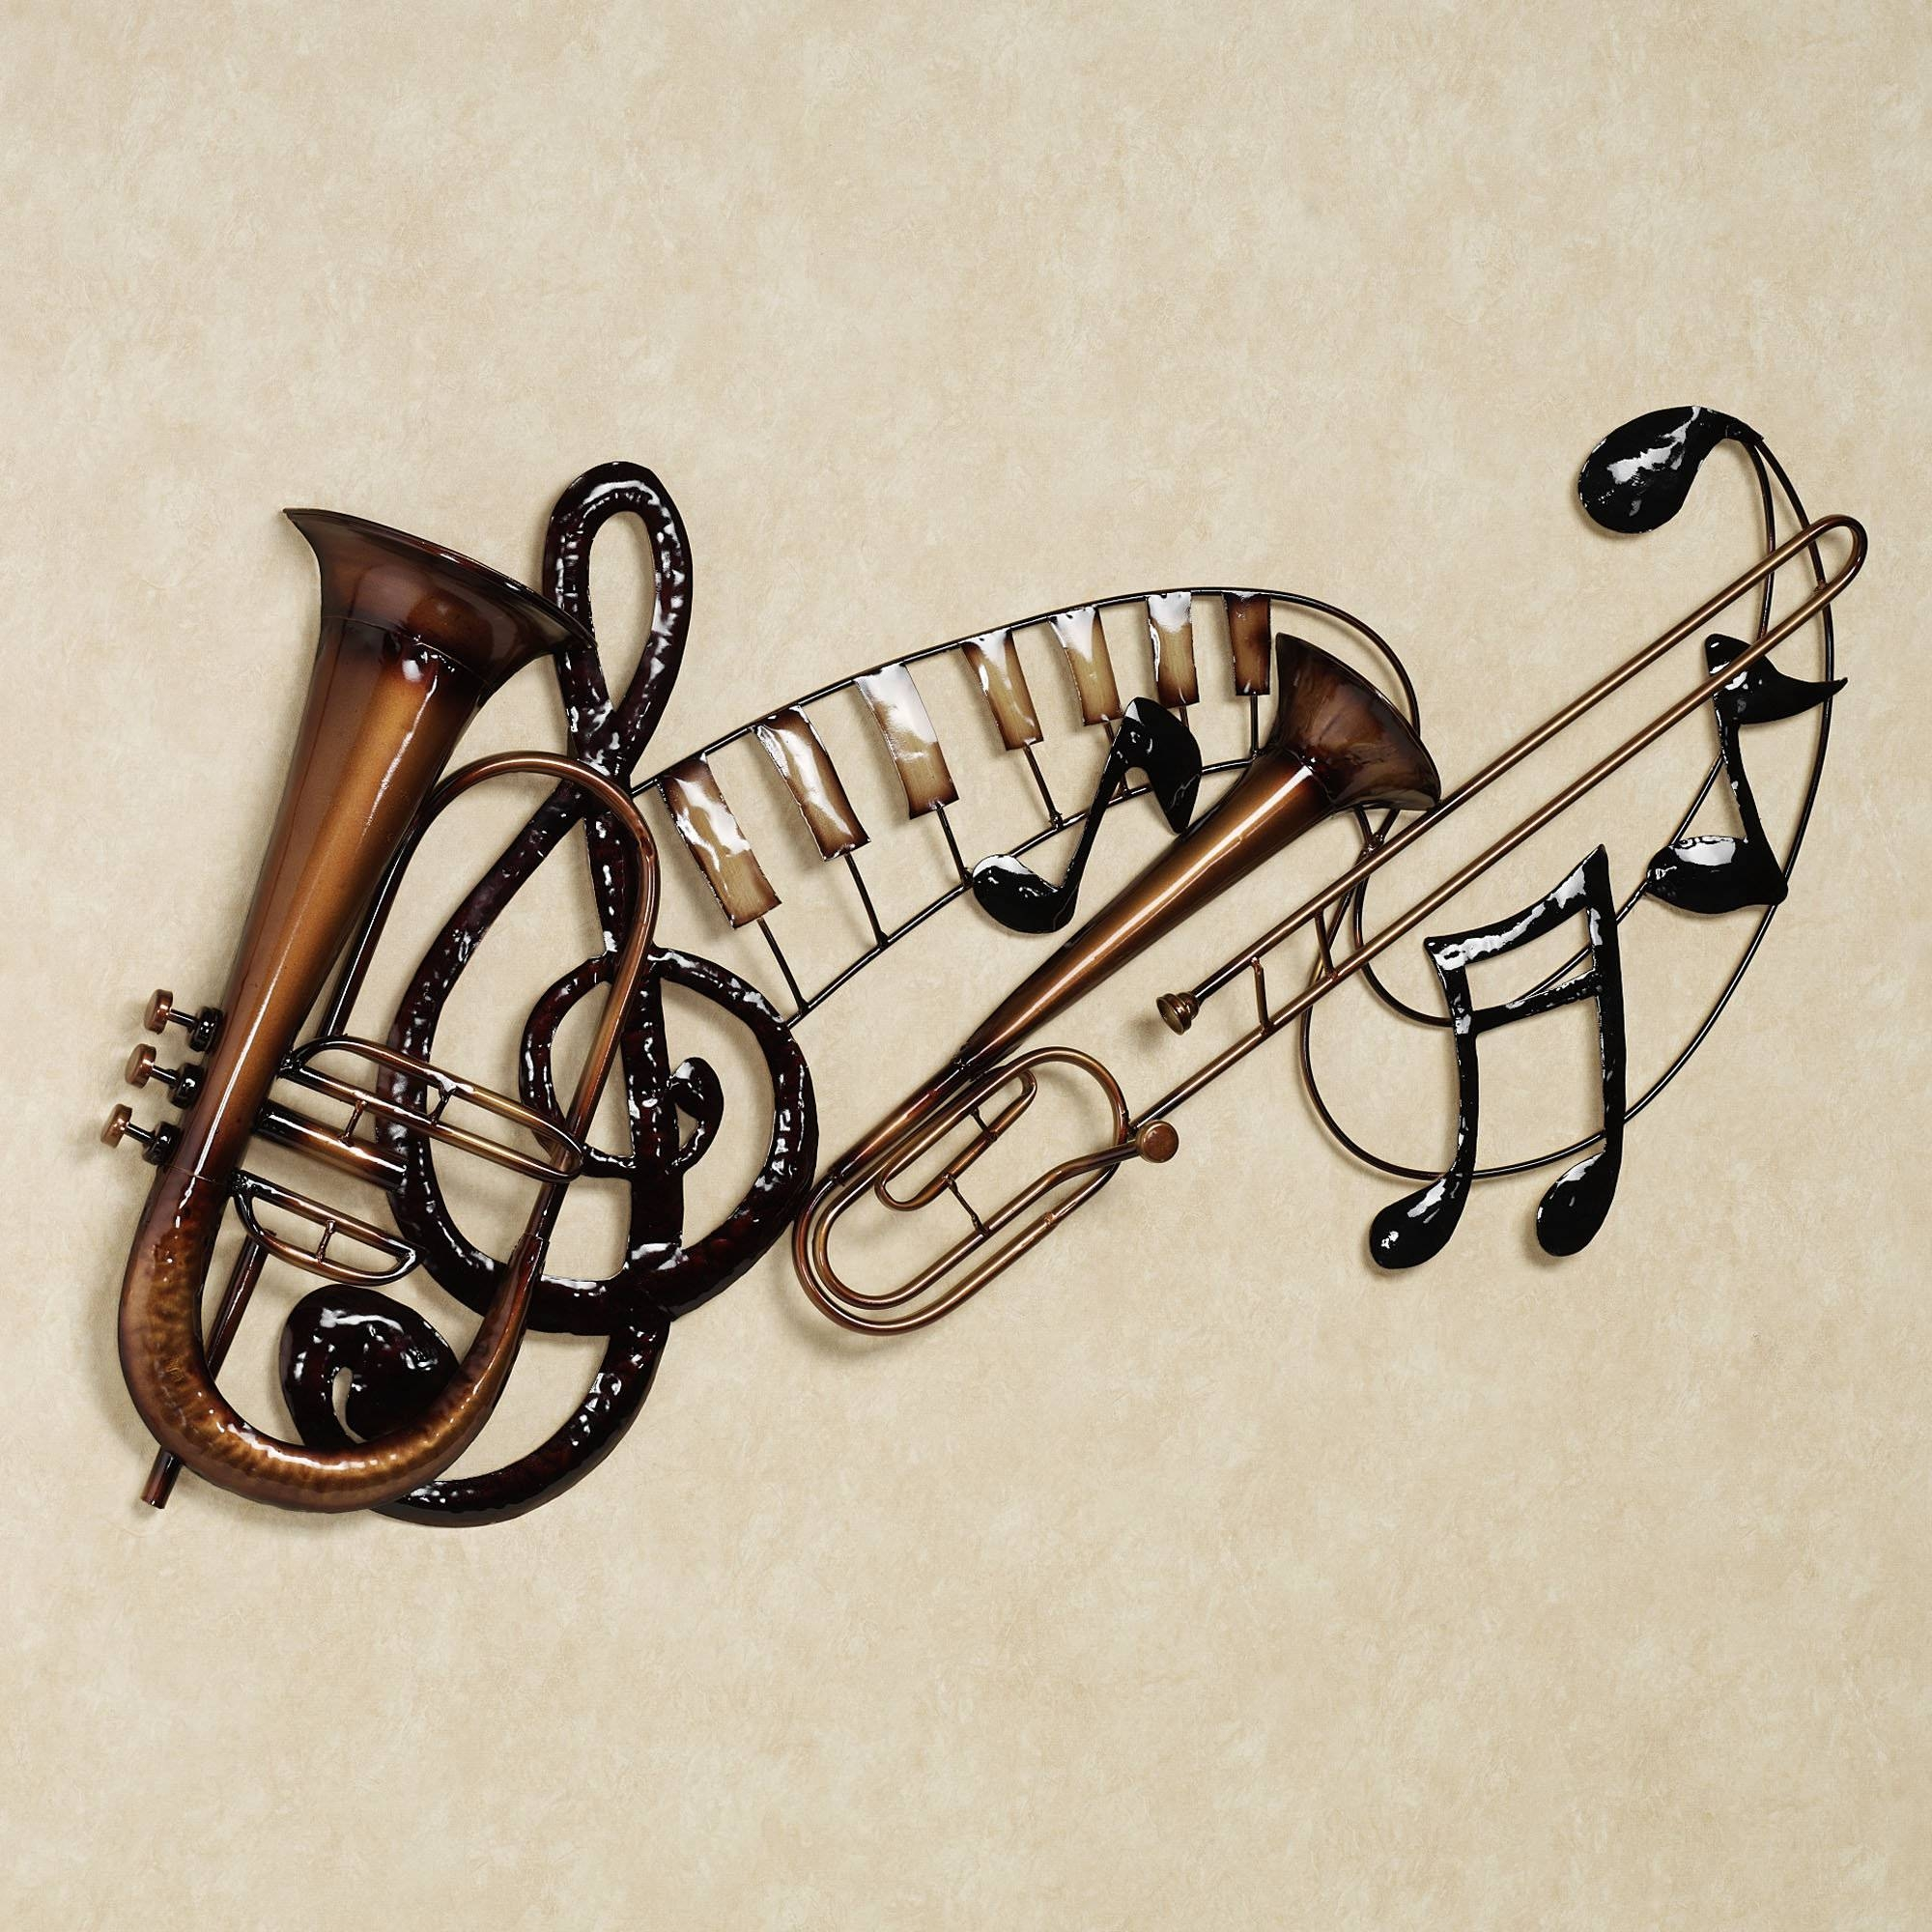 Wall Art Design Ideas: Interlude Unique Metal Wall Art Music In Most Current Music Theme Wall Art (View 21 of 30)